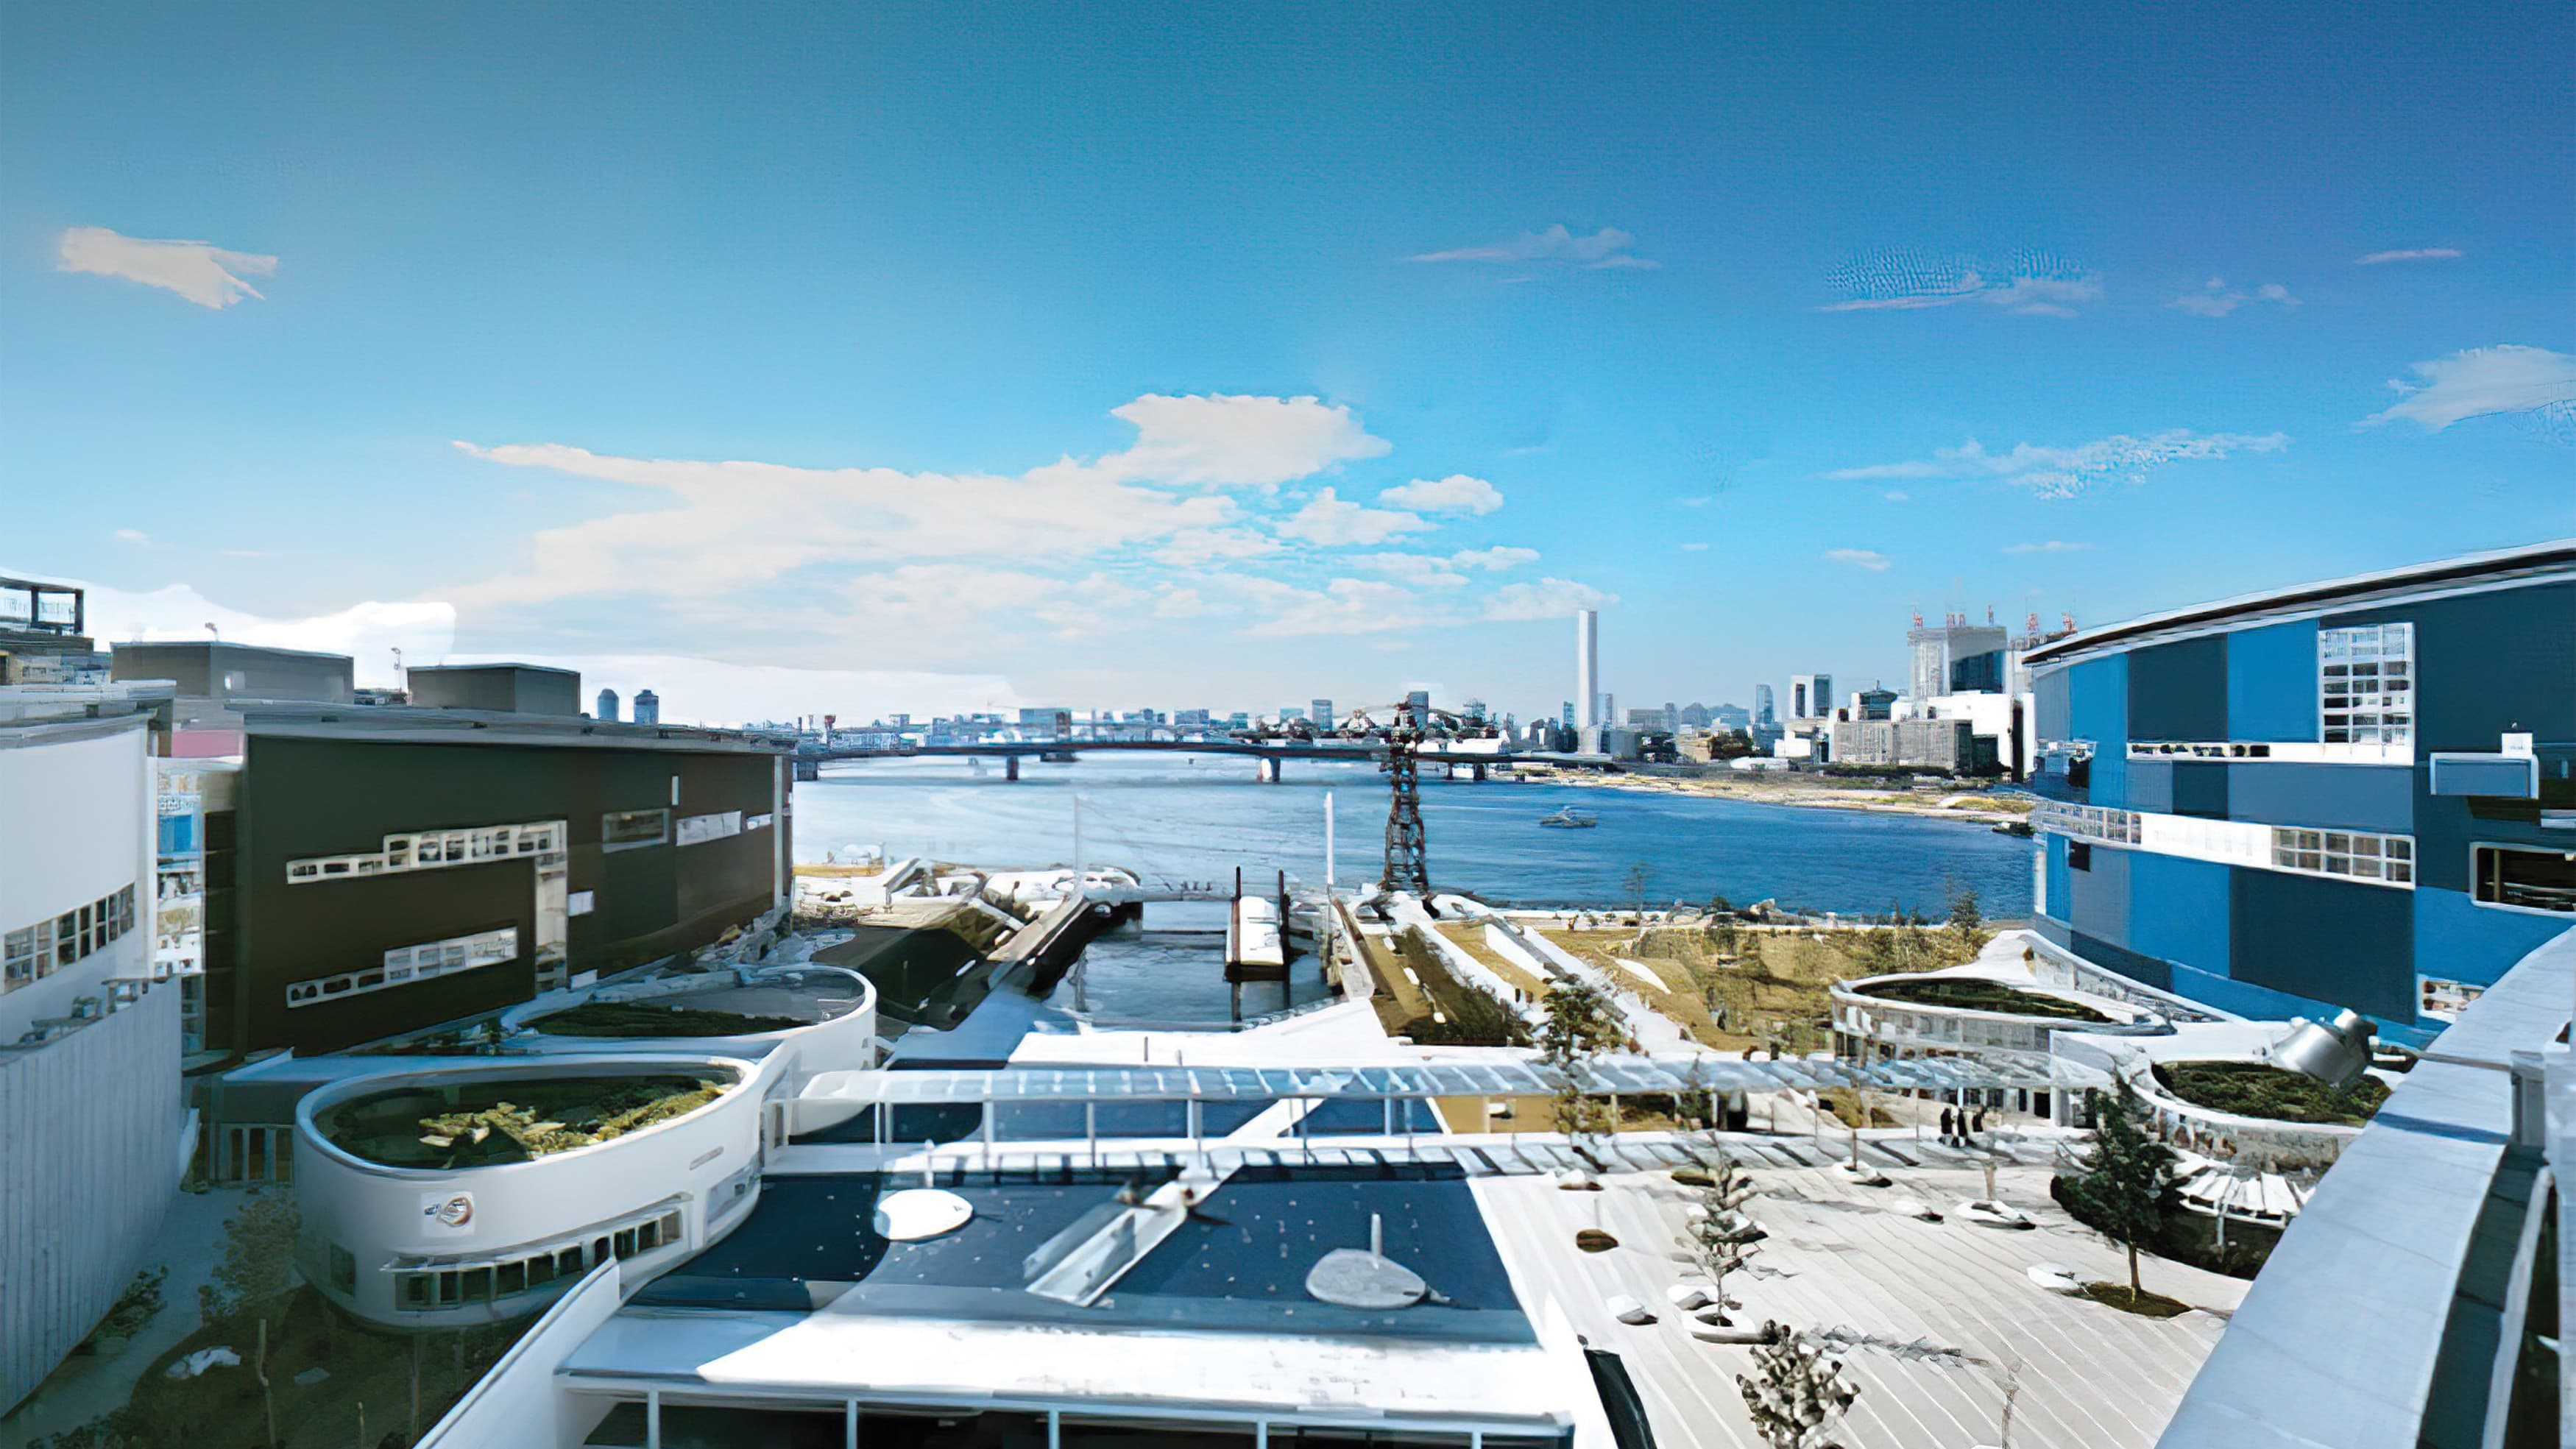 A photograph of the Lalaport Toyosu's modern architecture